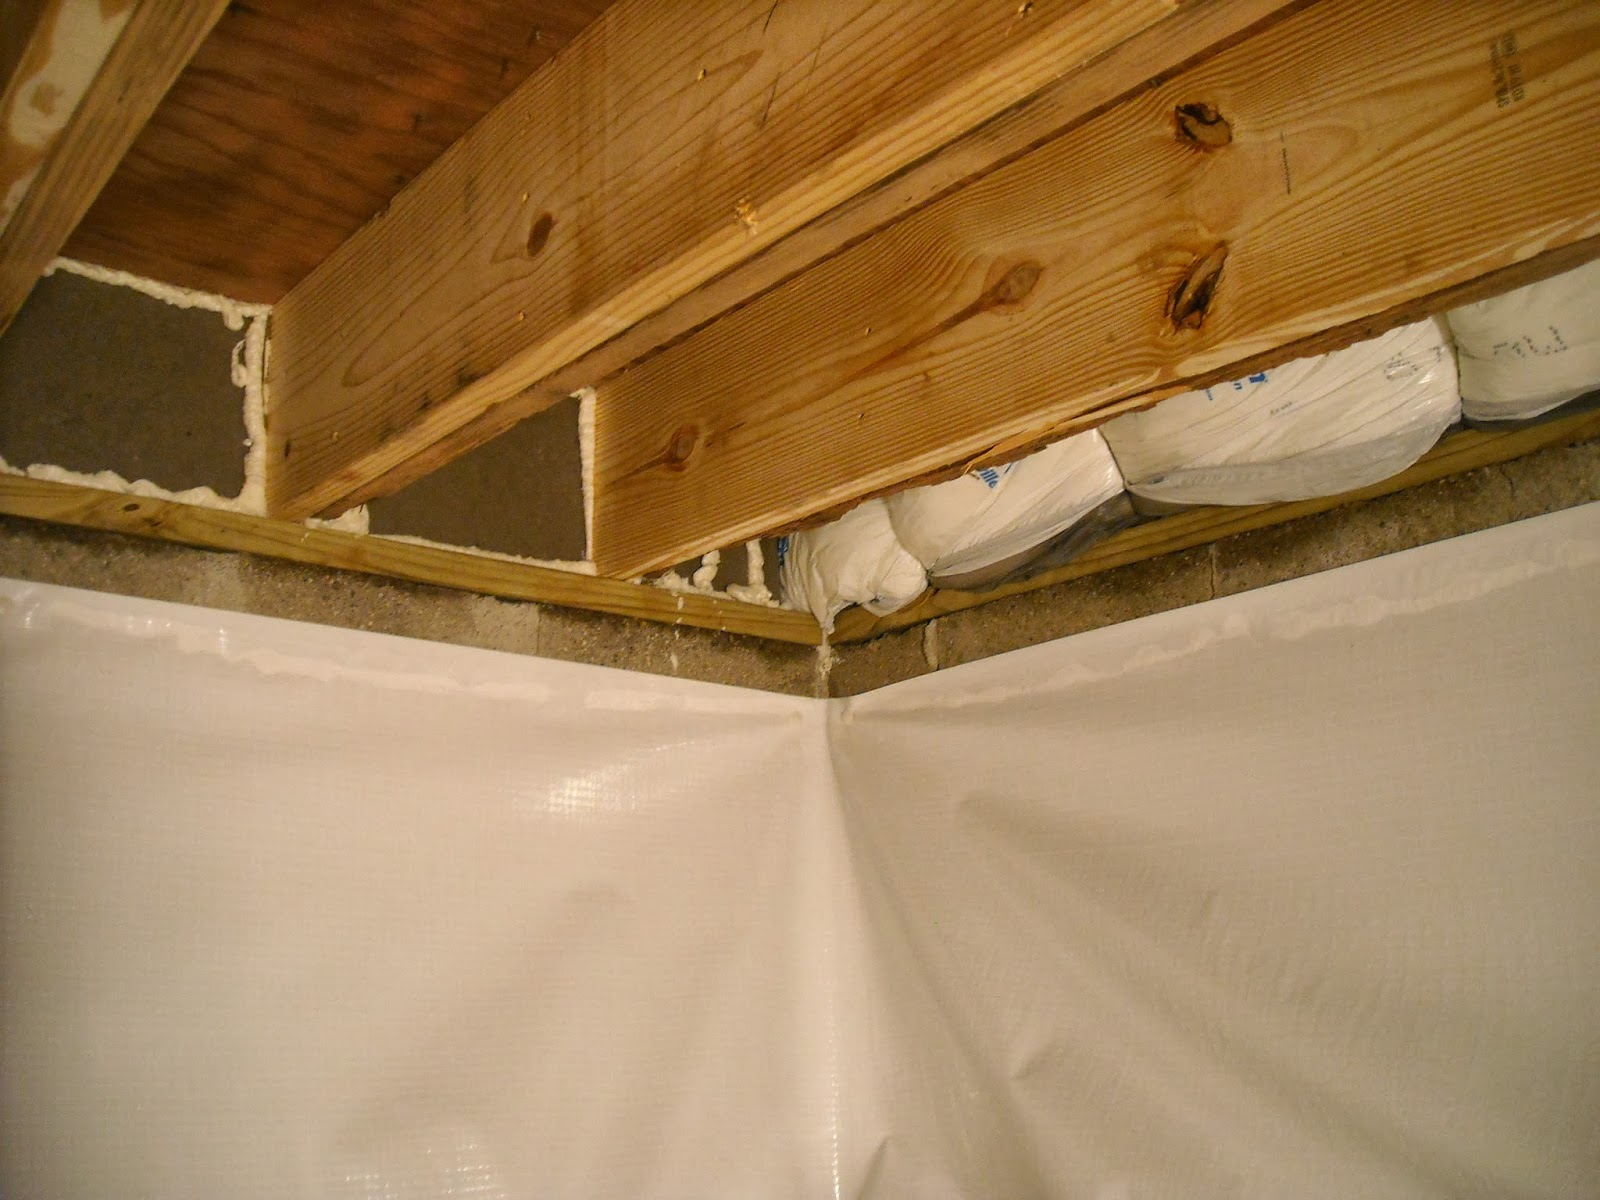 Indiana Crawlspace Repair And Waterproofing December 2013